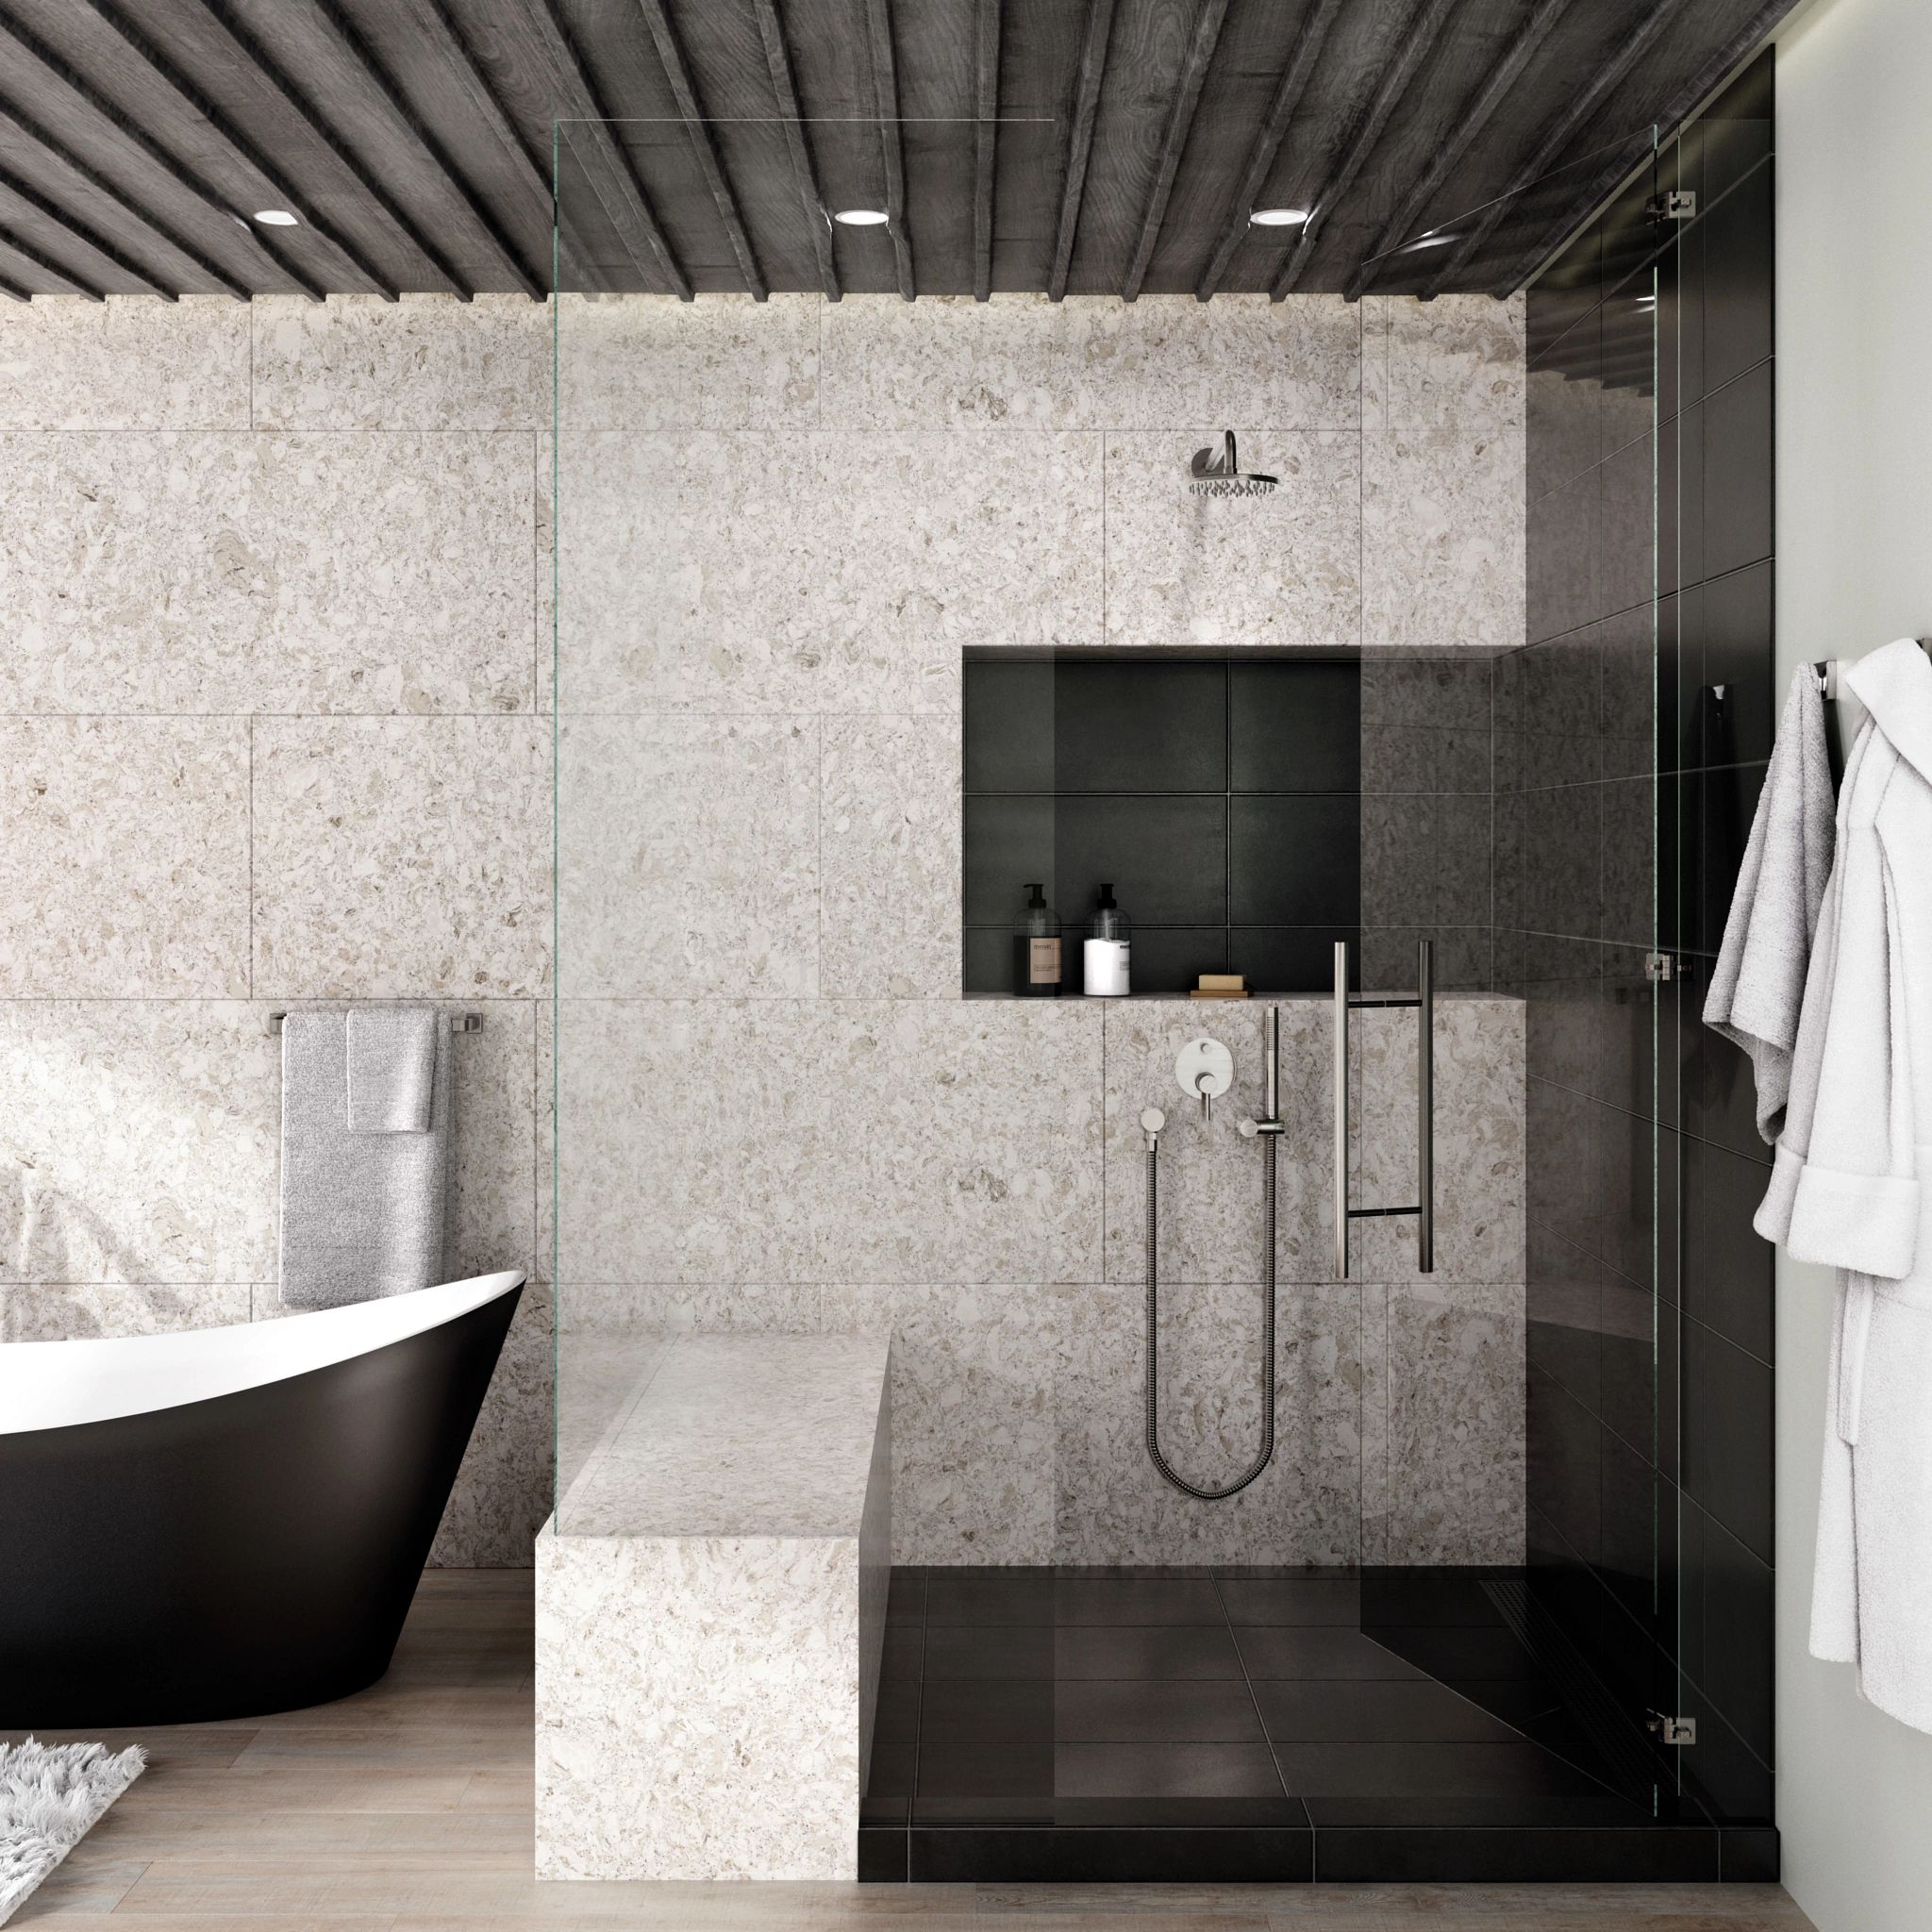 A bathroom with a bathtub and sink  Description automatically generated with low confidence